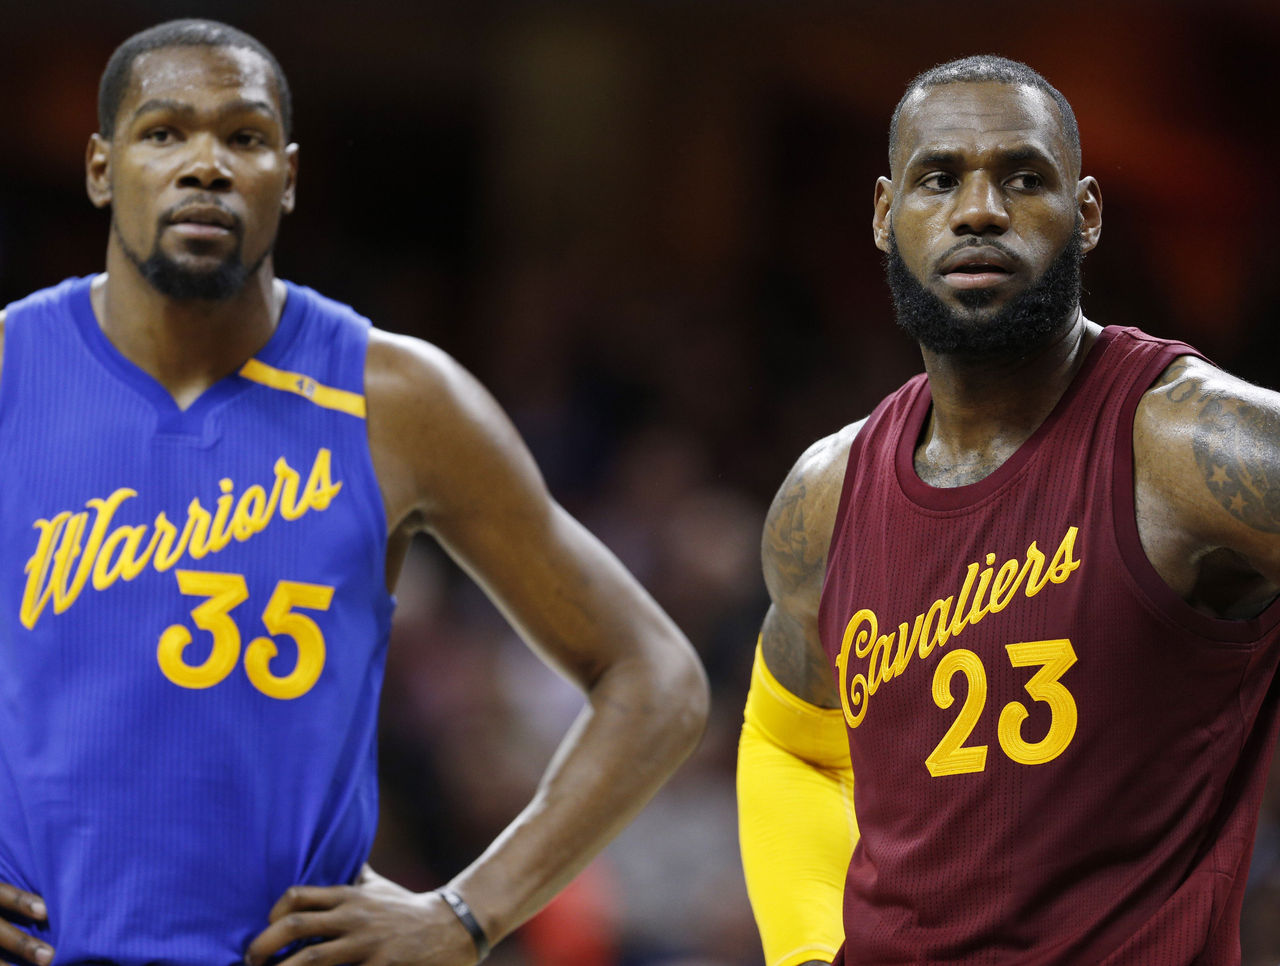 Cropped_2016-12-26t005408z_1119824173_nocid_rtrmadp_3_nba-golden-state-warriors-at-cleveland-cavaliers